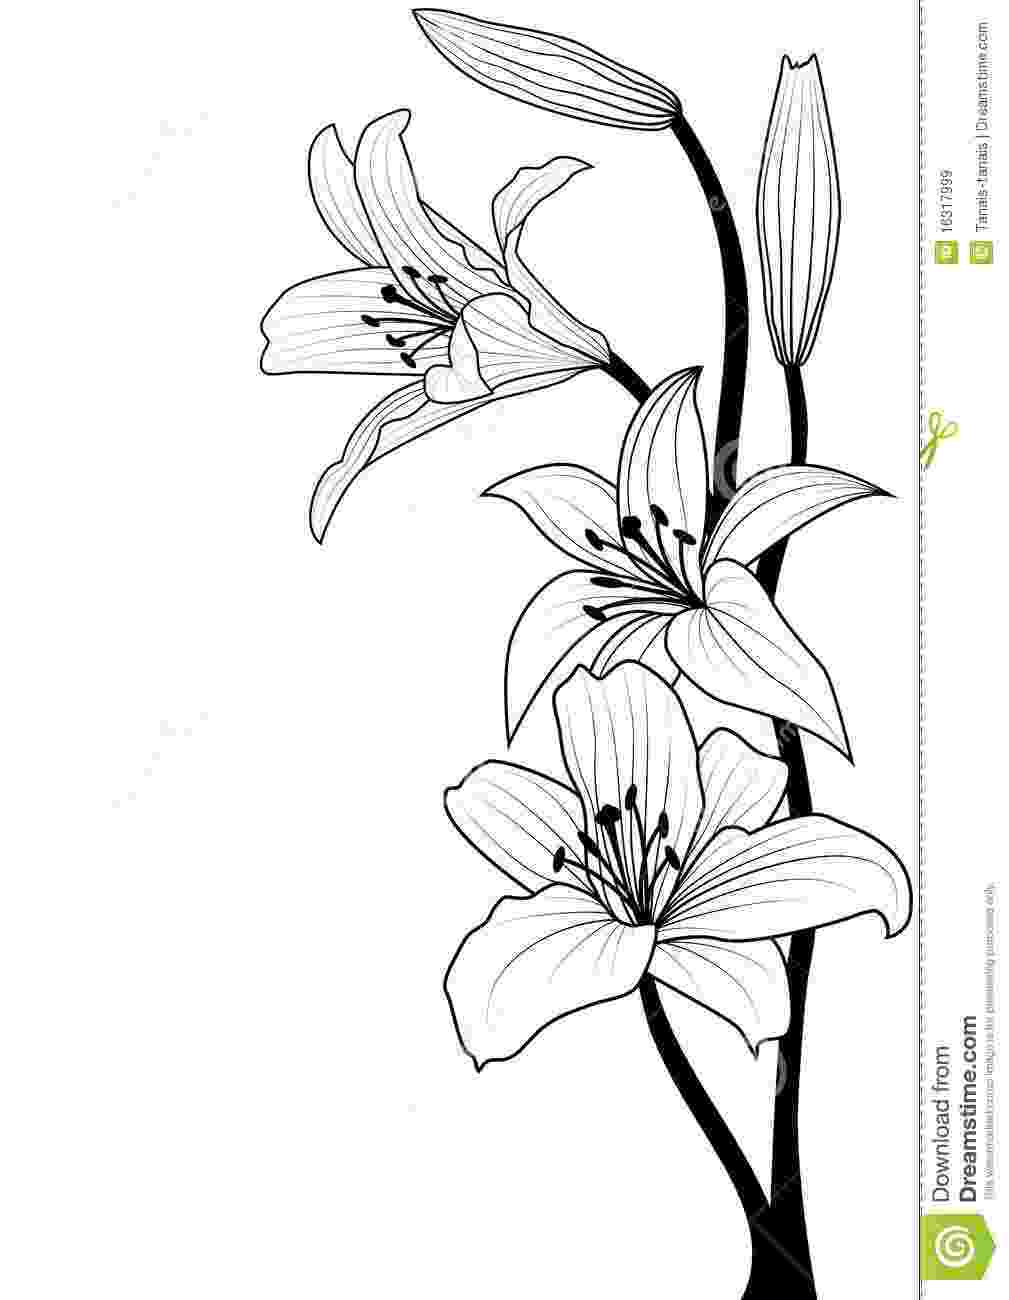 lily sketch how to draw a lily step by step flowers pop culture sketch lily